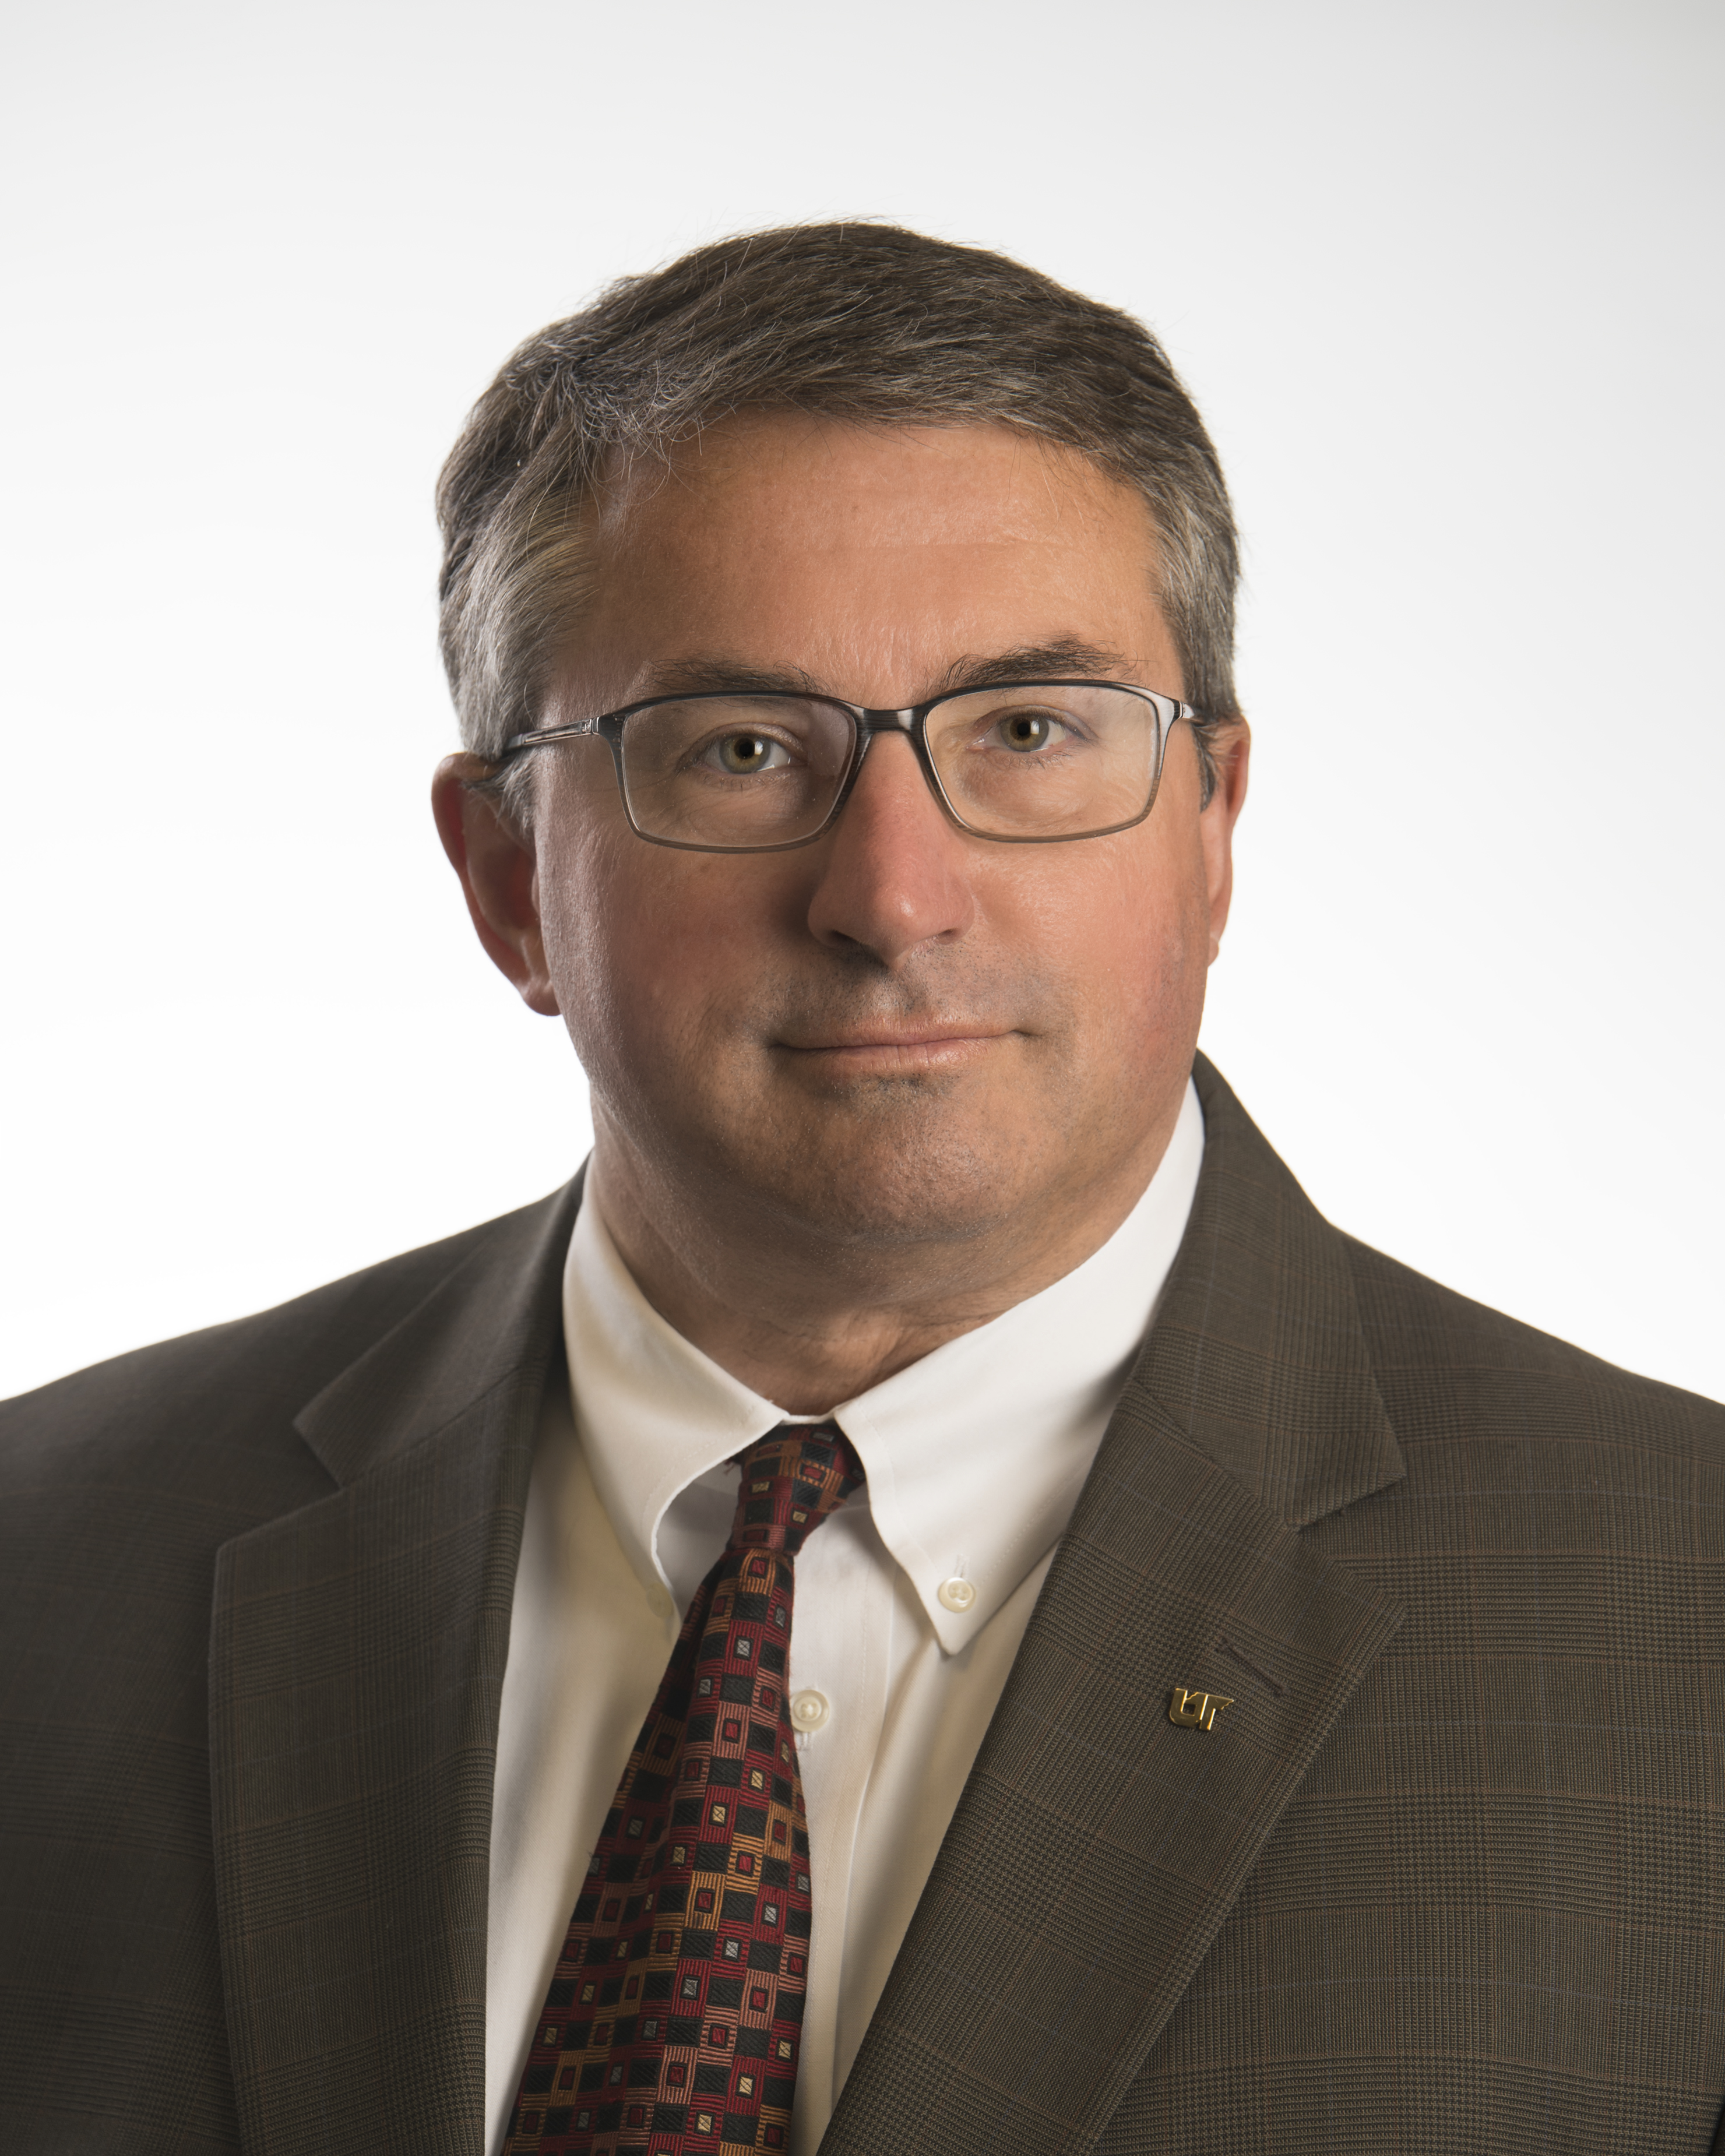 Steve Thompson : Assistant Vice President, IPS